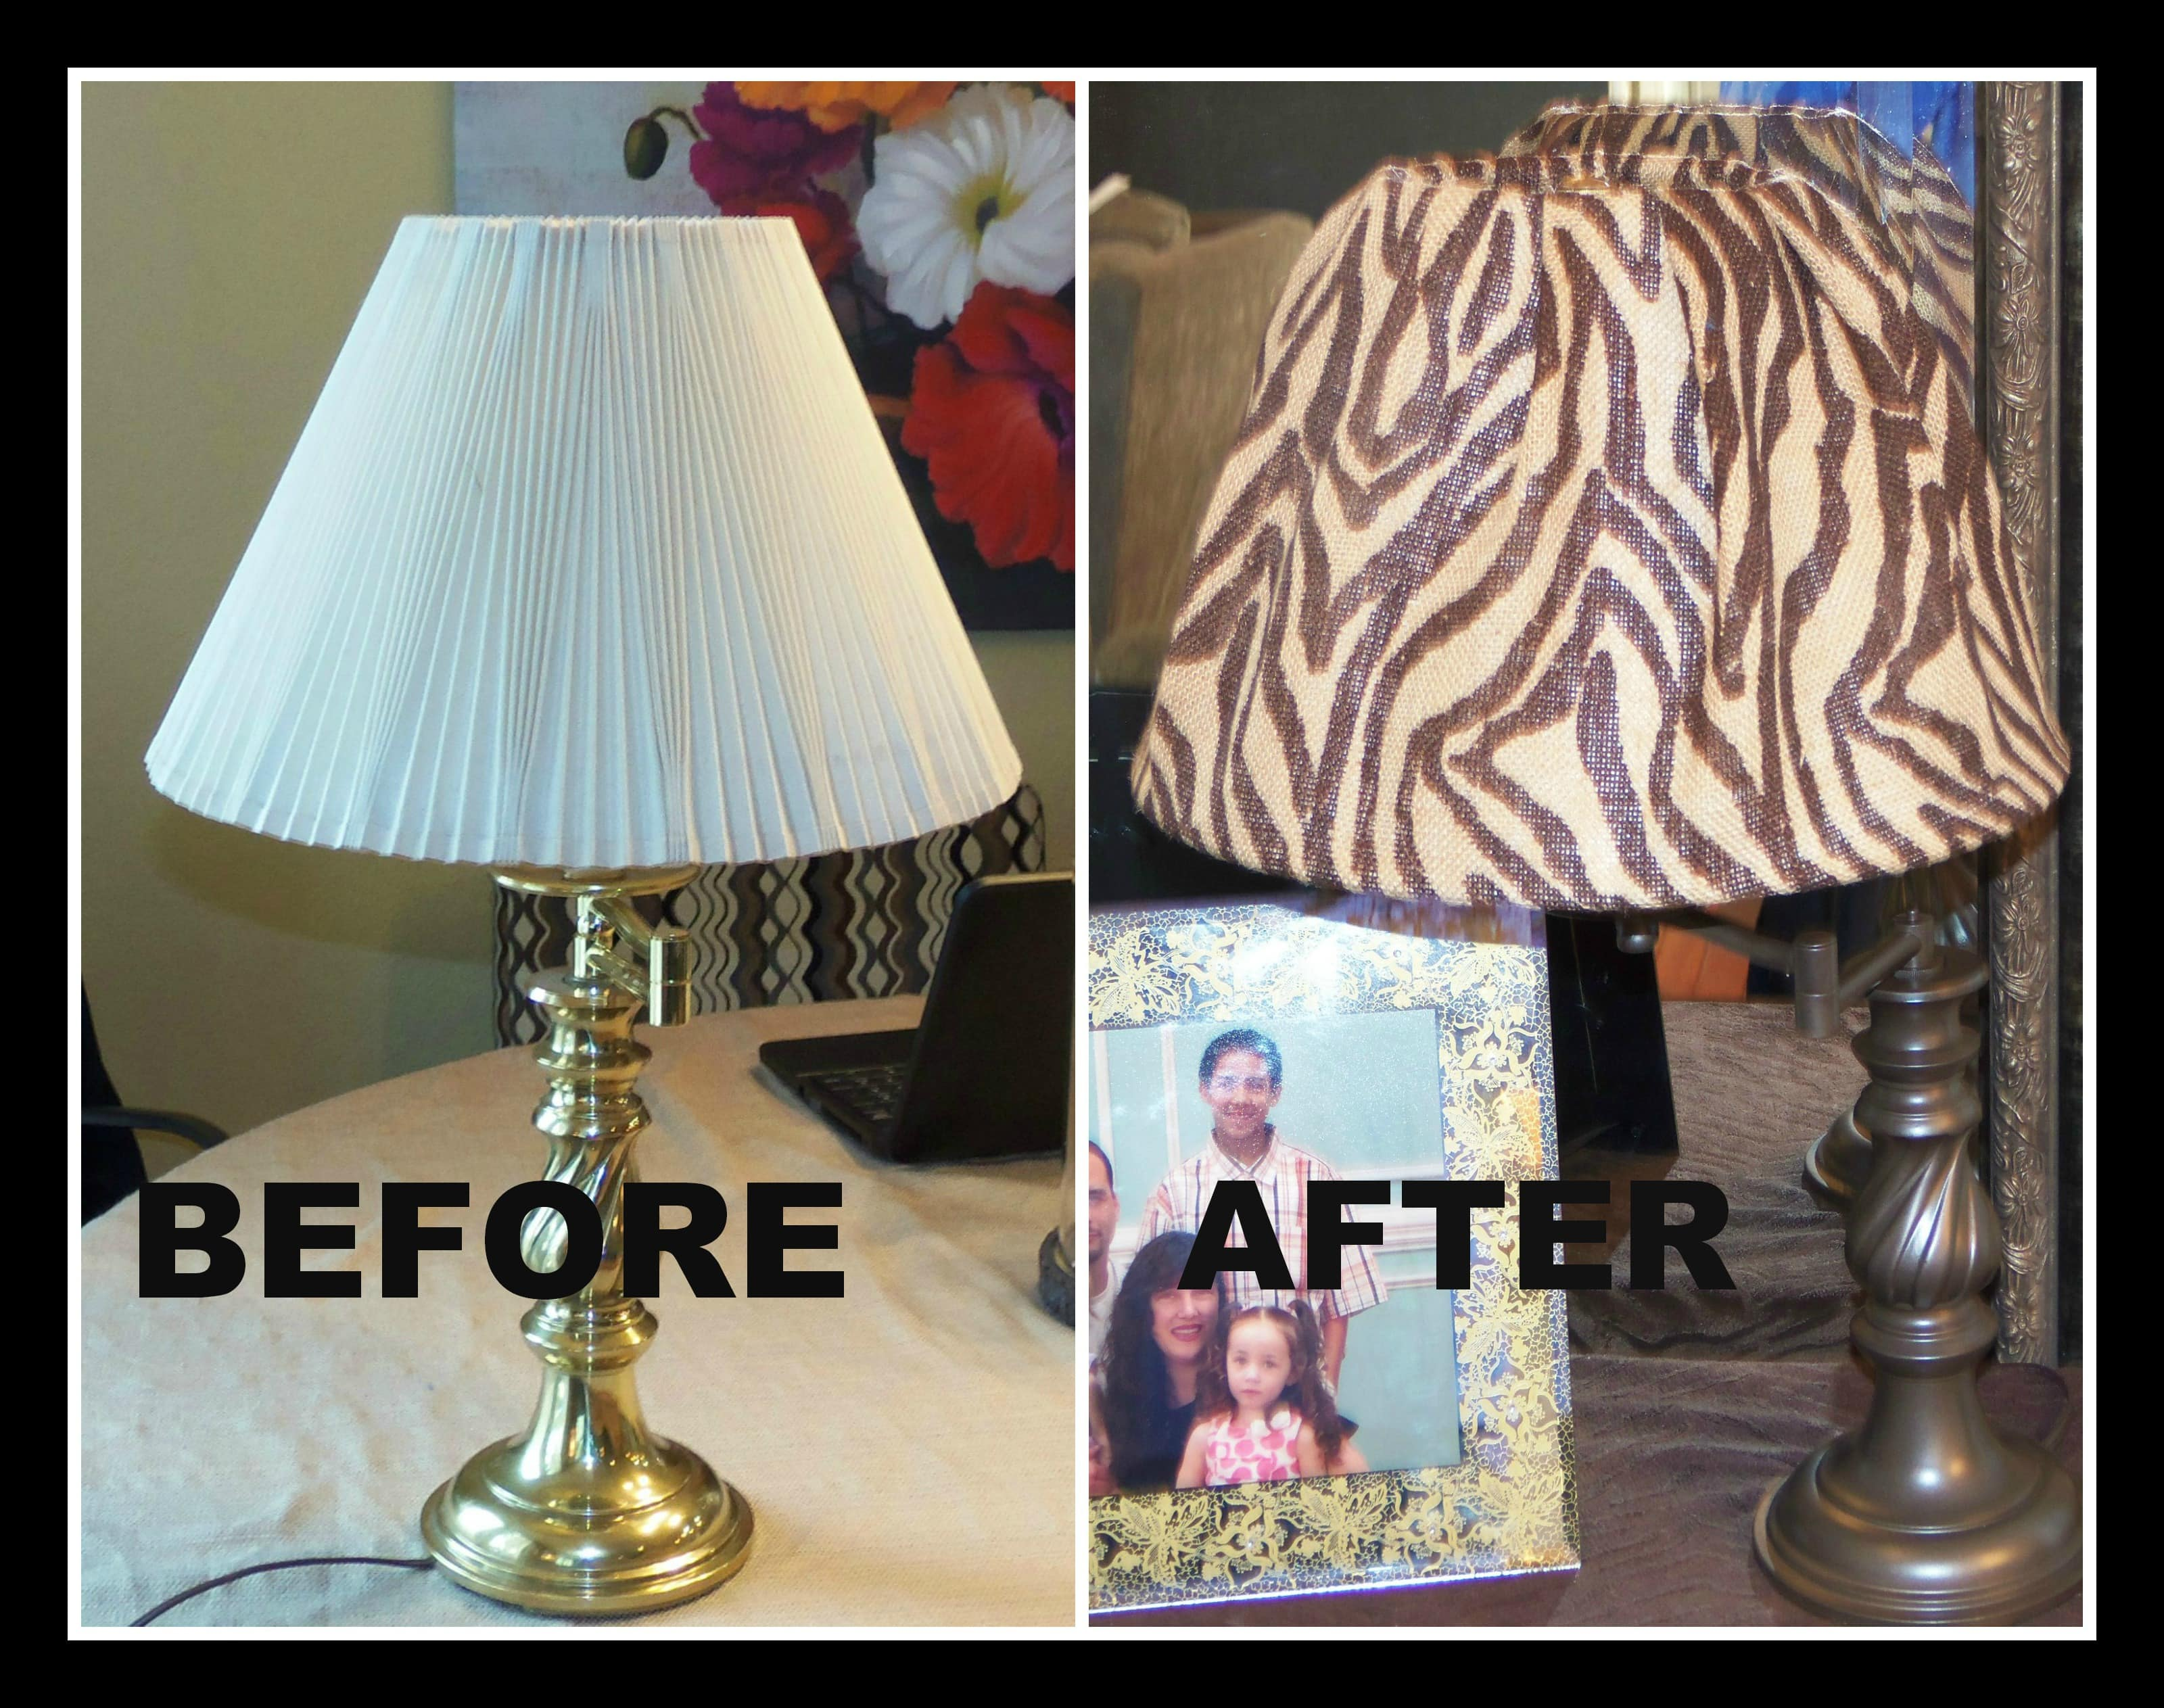 Diy redo a free lamp into something new thrifty nw mom for Redoing lamp shades